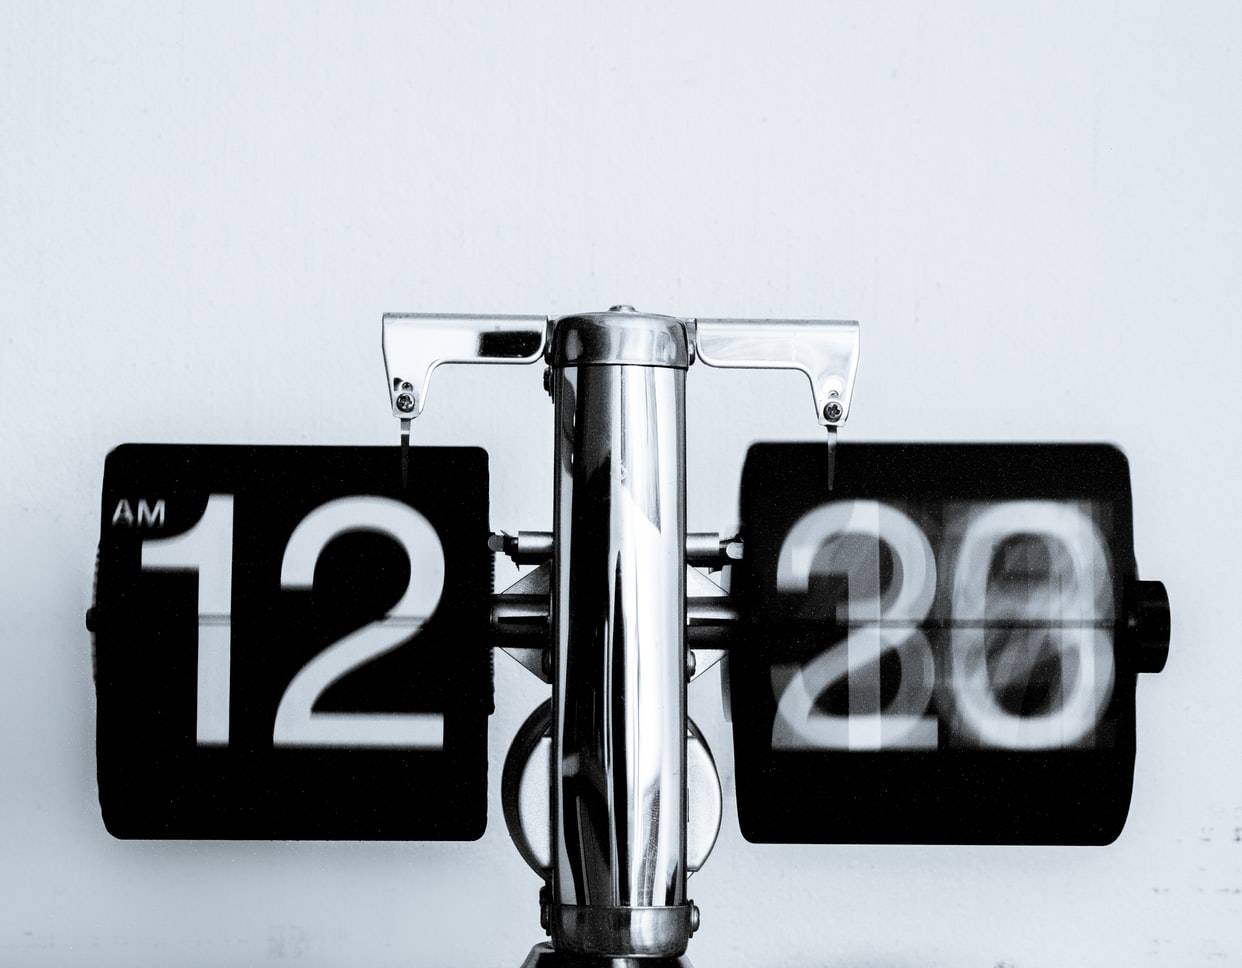 clock to illustrate time